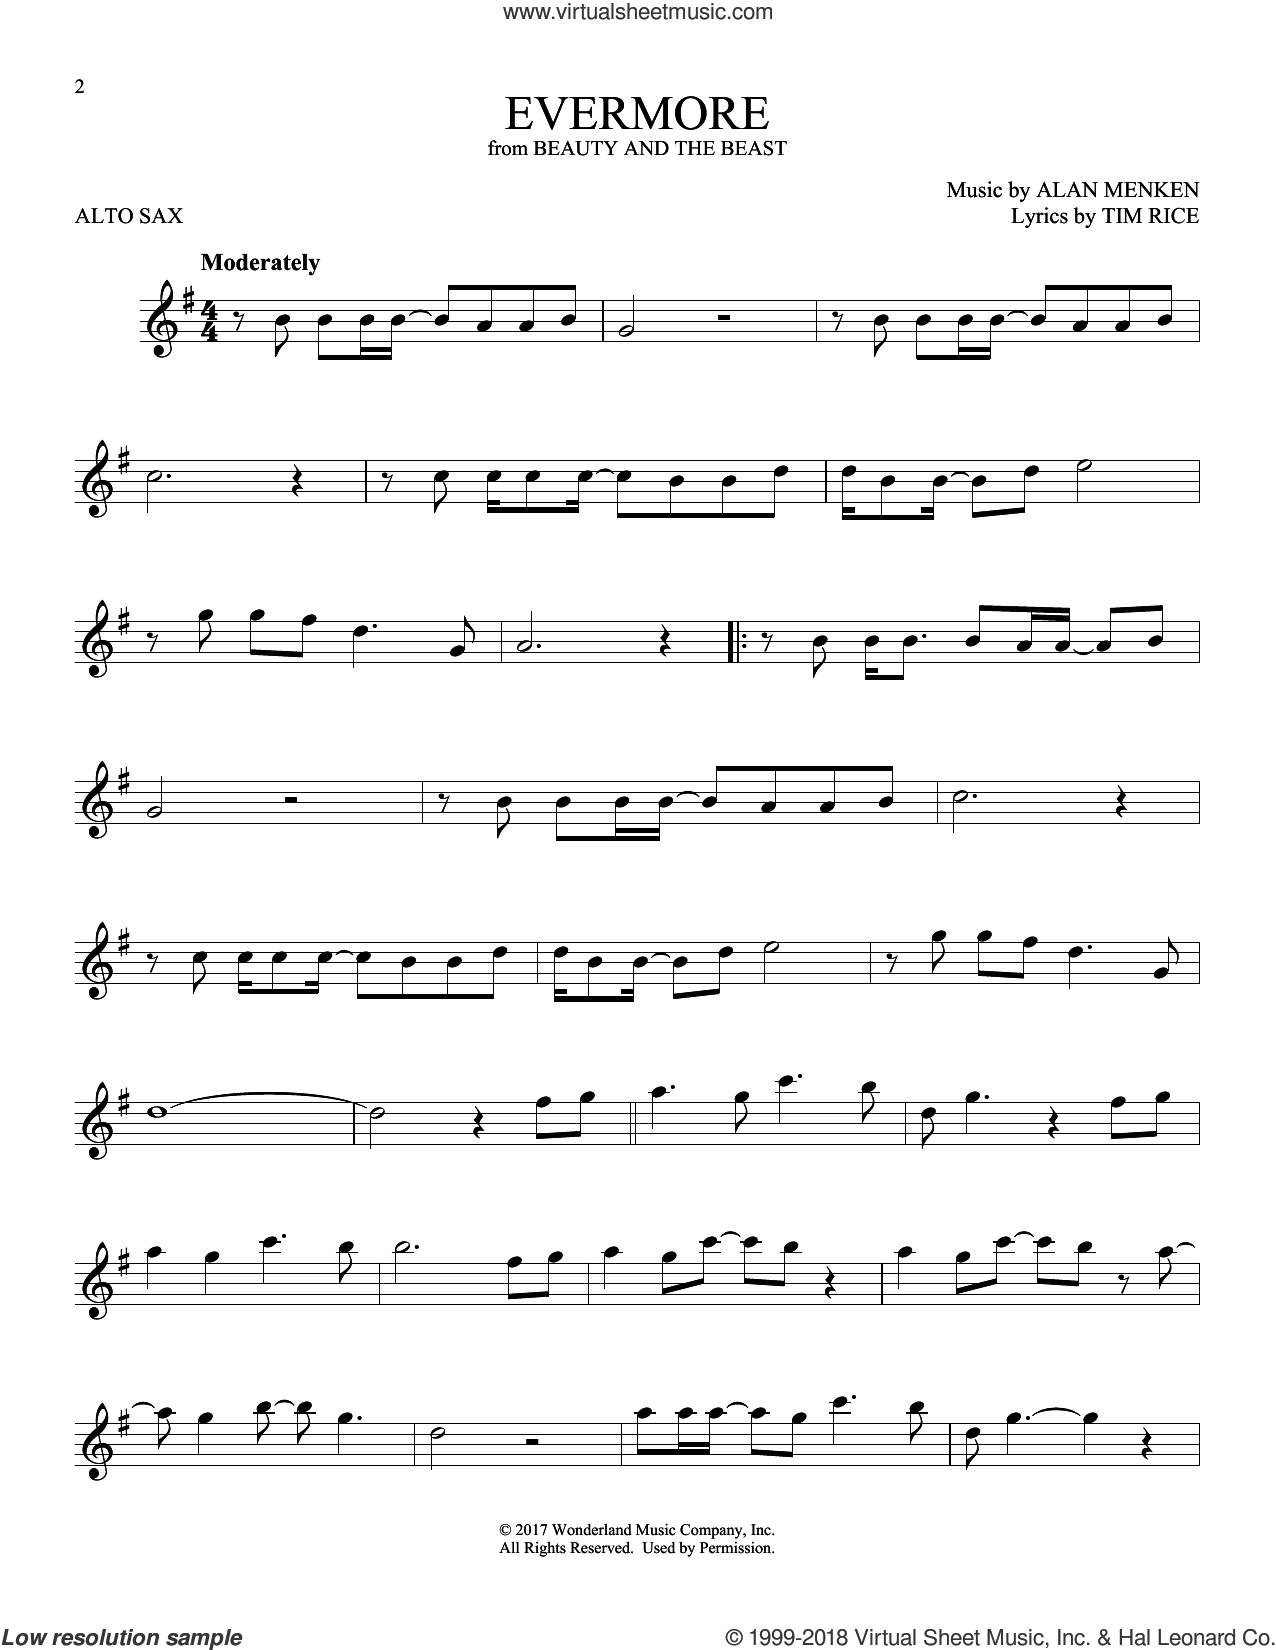 Evermore sheet music for alto saxophone solo by Alan Menken and Tim Rice, intermediate skill level